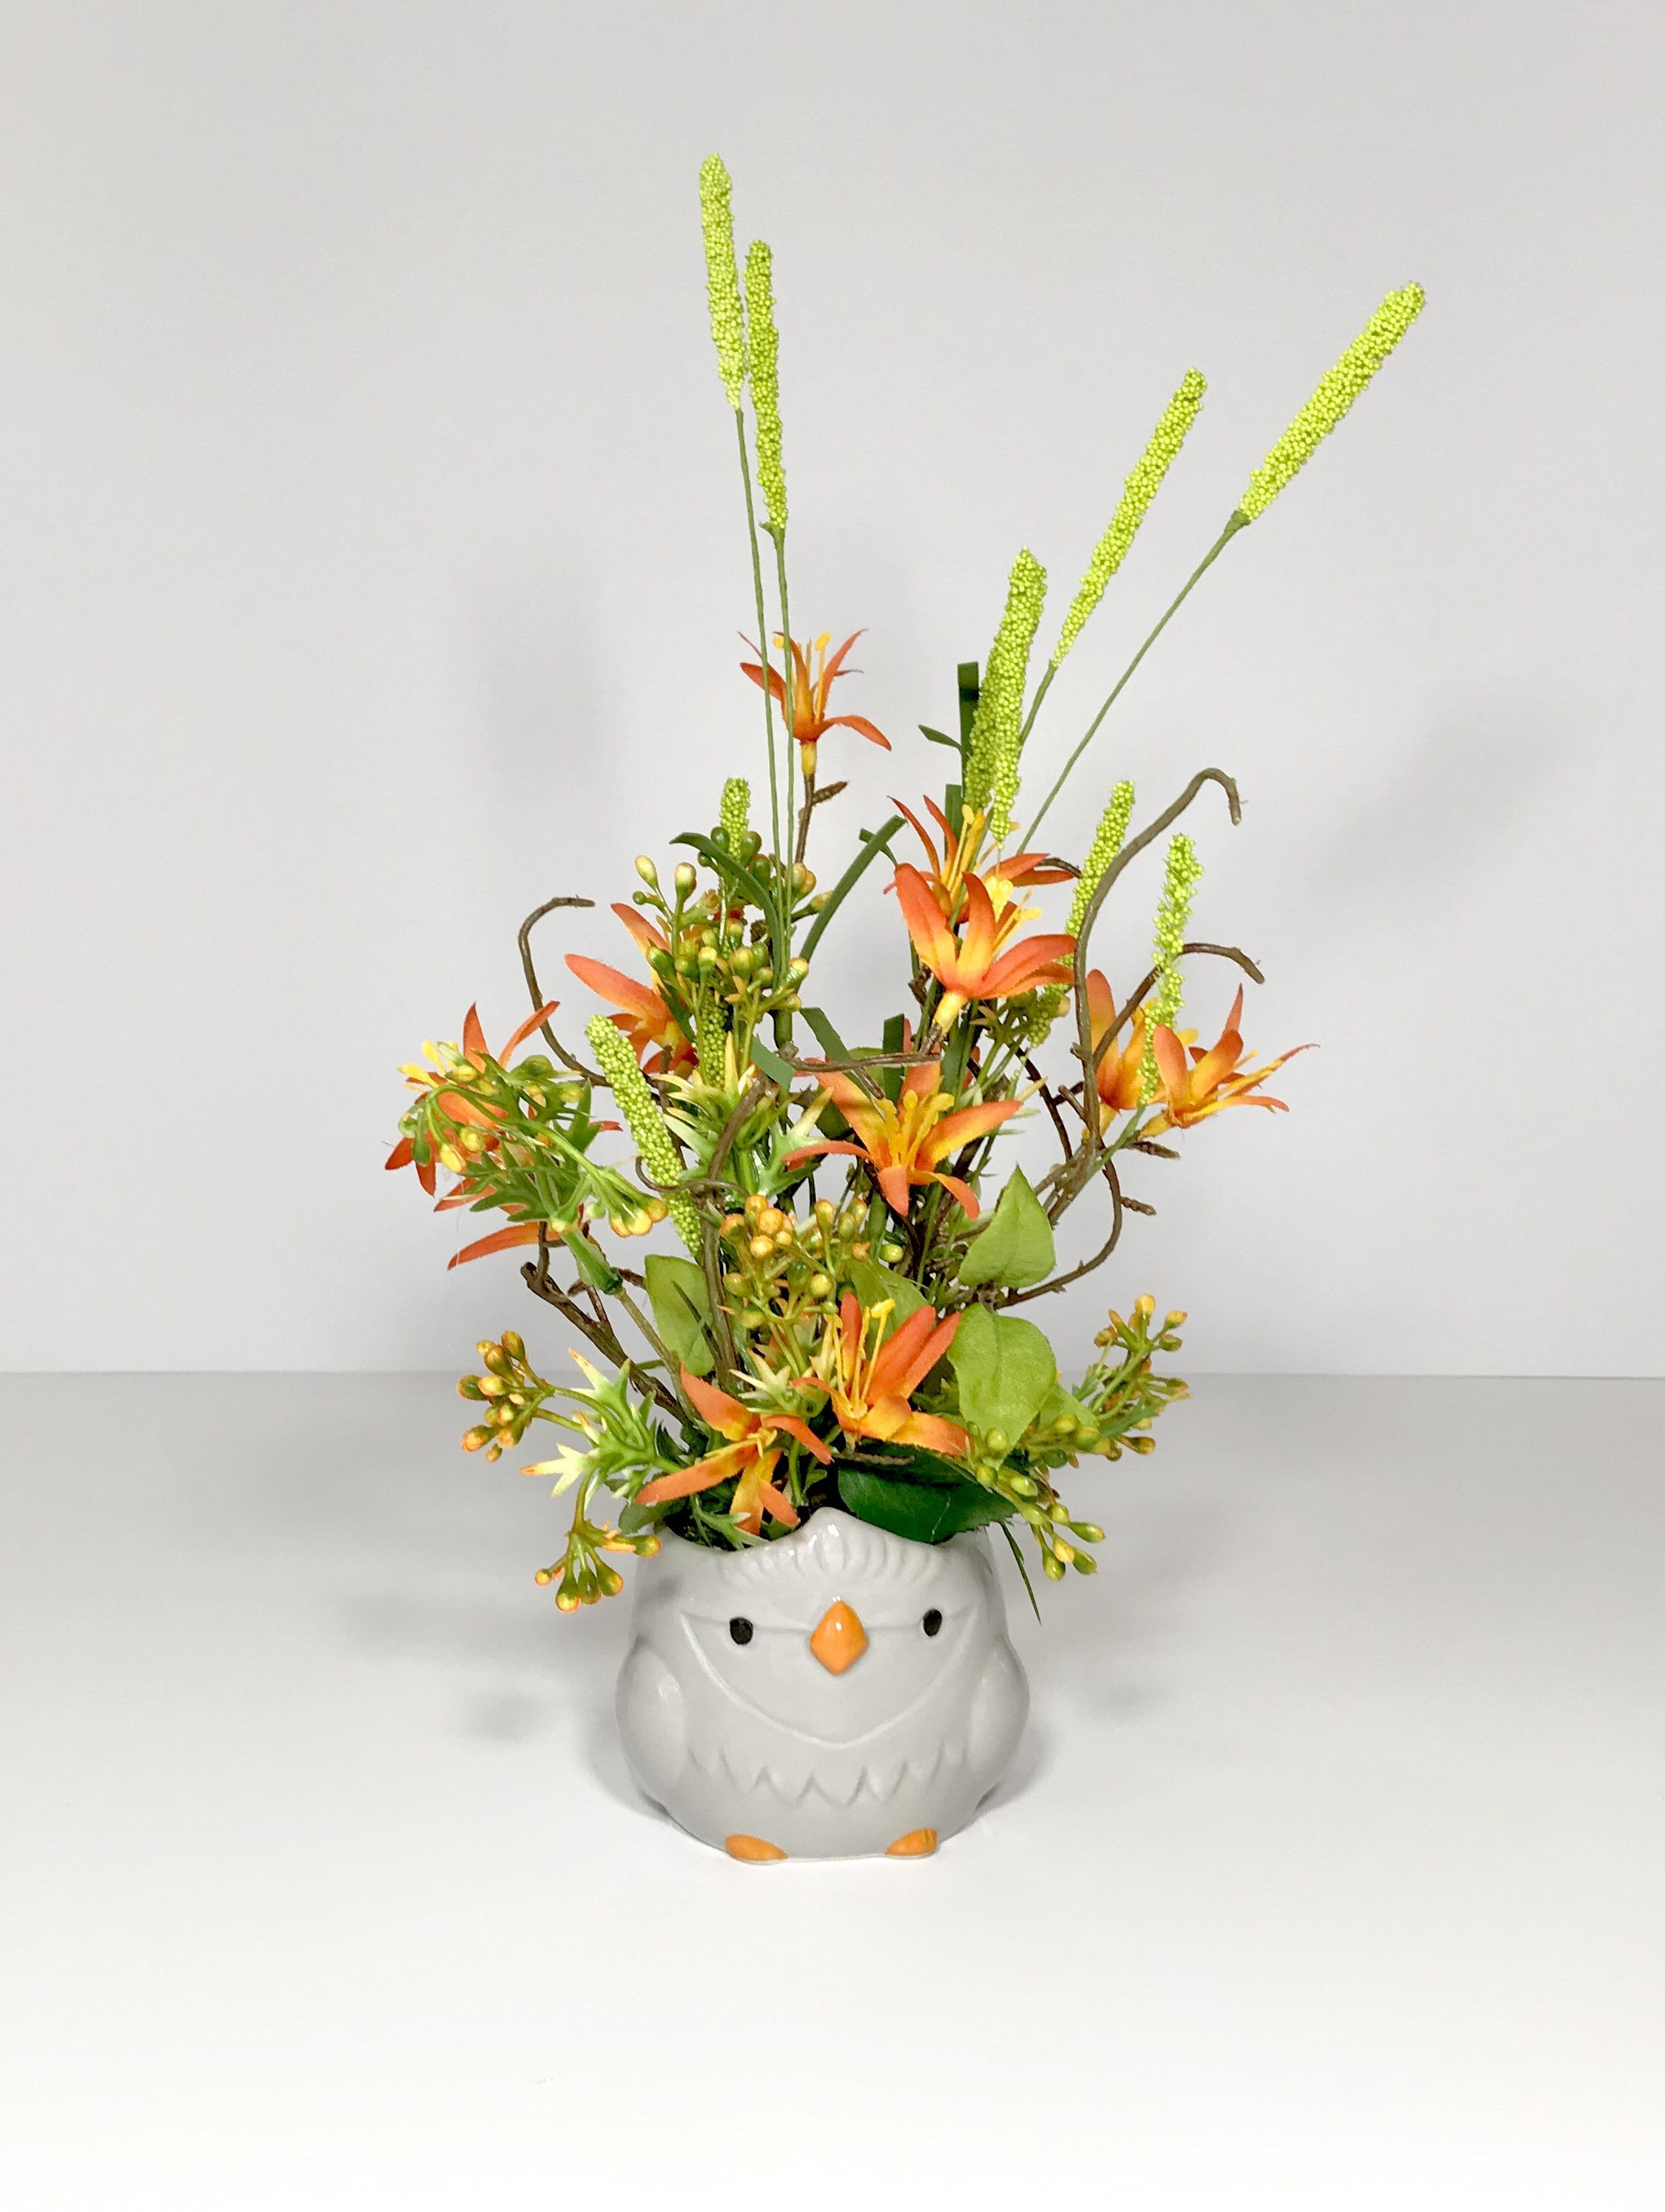 Small Ceramic Gray Owl Novelty Floral Arrangement Orange Flowers Decoration Spring Summer Floral Table Decoration Gift Present New In 2020 Flower Decorations Summer Flower Arrangements Flower Table Decorations